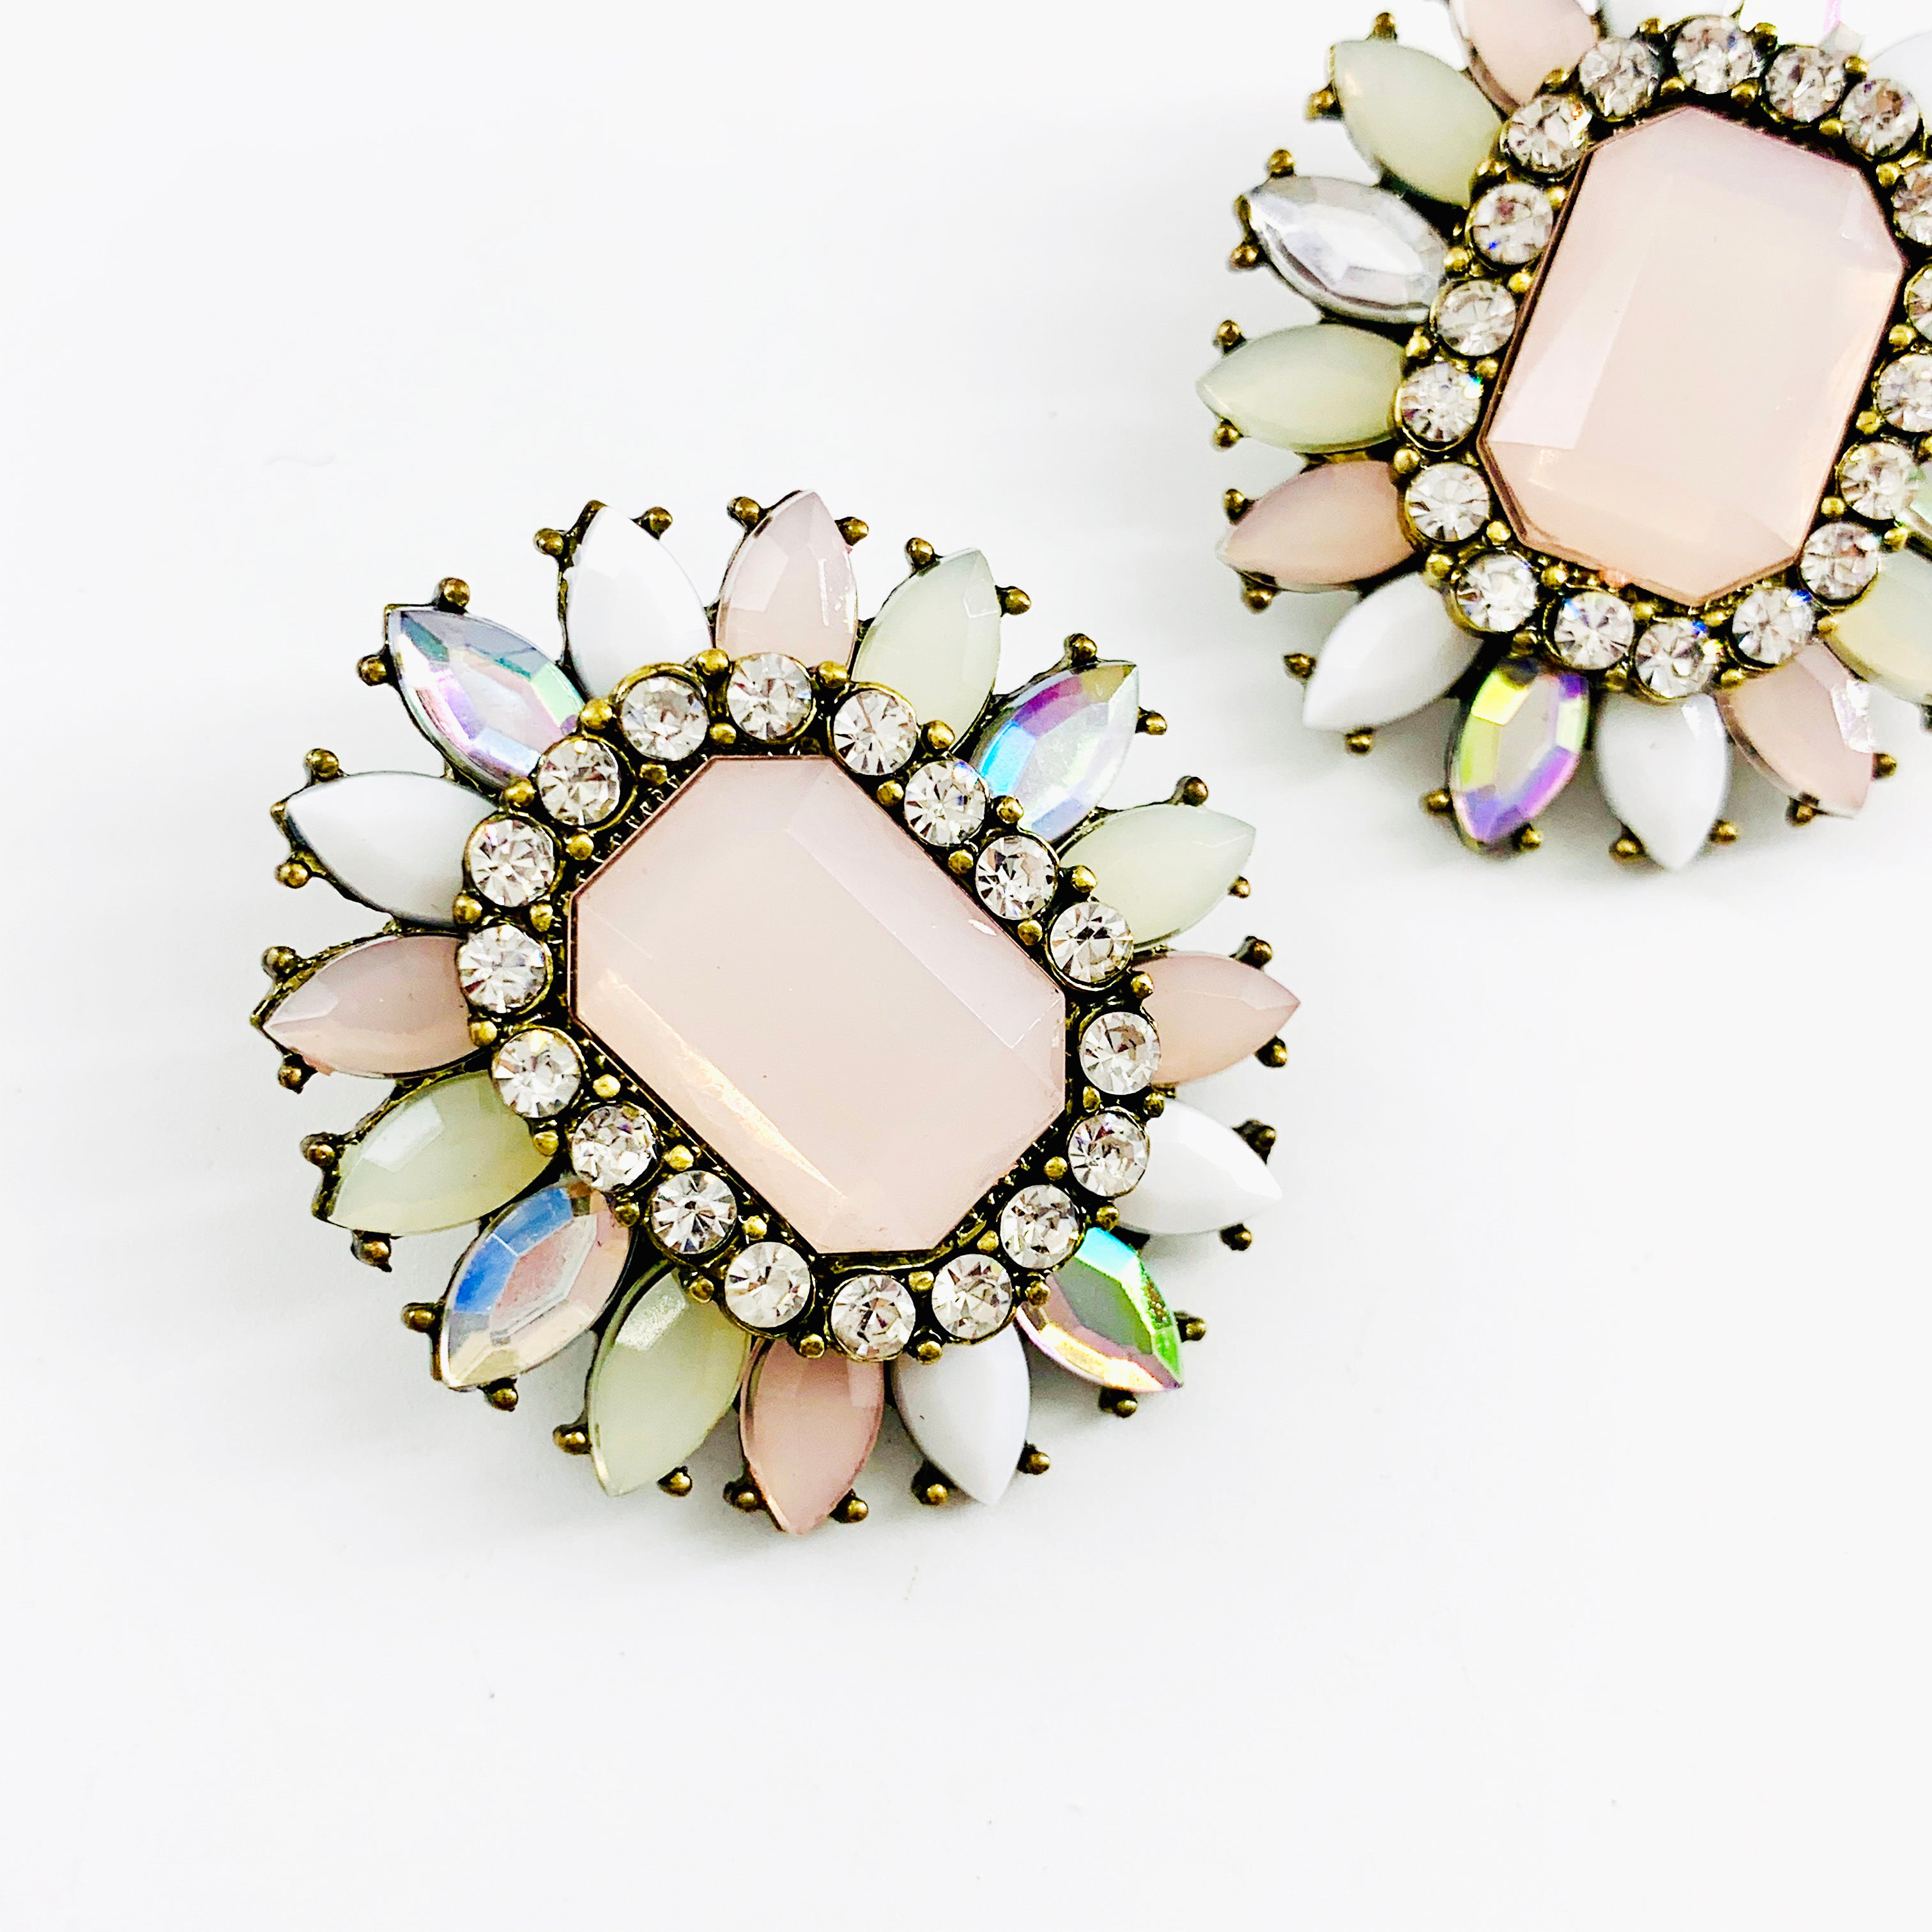 Pale pink flower earrings with diamante stones